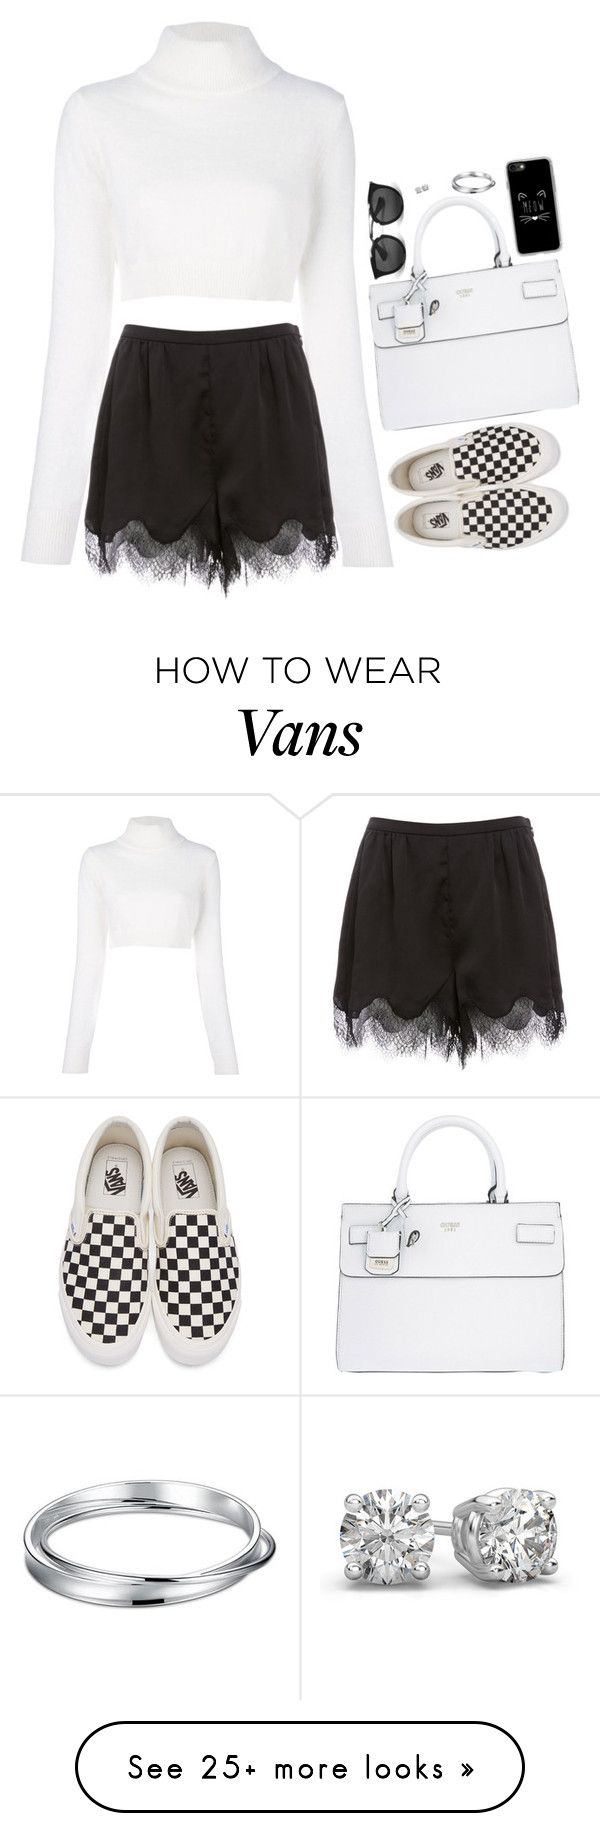 """""""Untitled #6571"""" by miki006 on Polyvore featuring Balmain, GUESS, Casetify, Prada and Vans"""